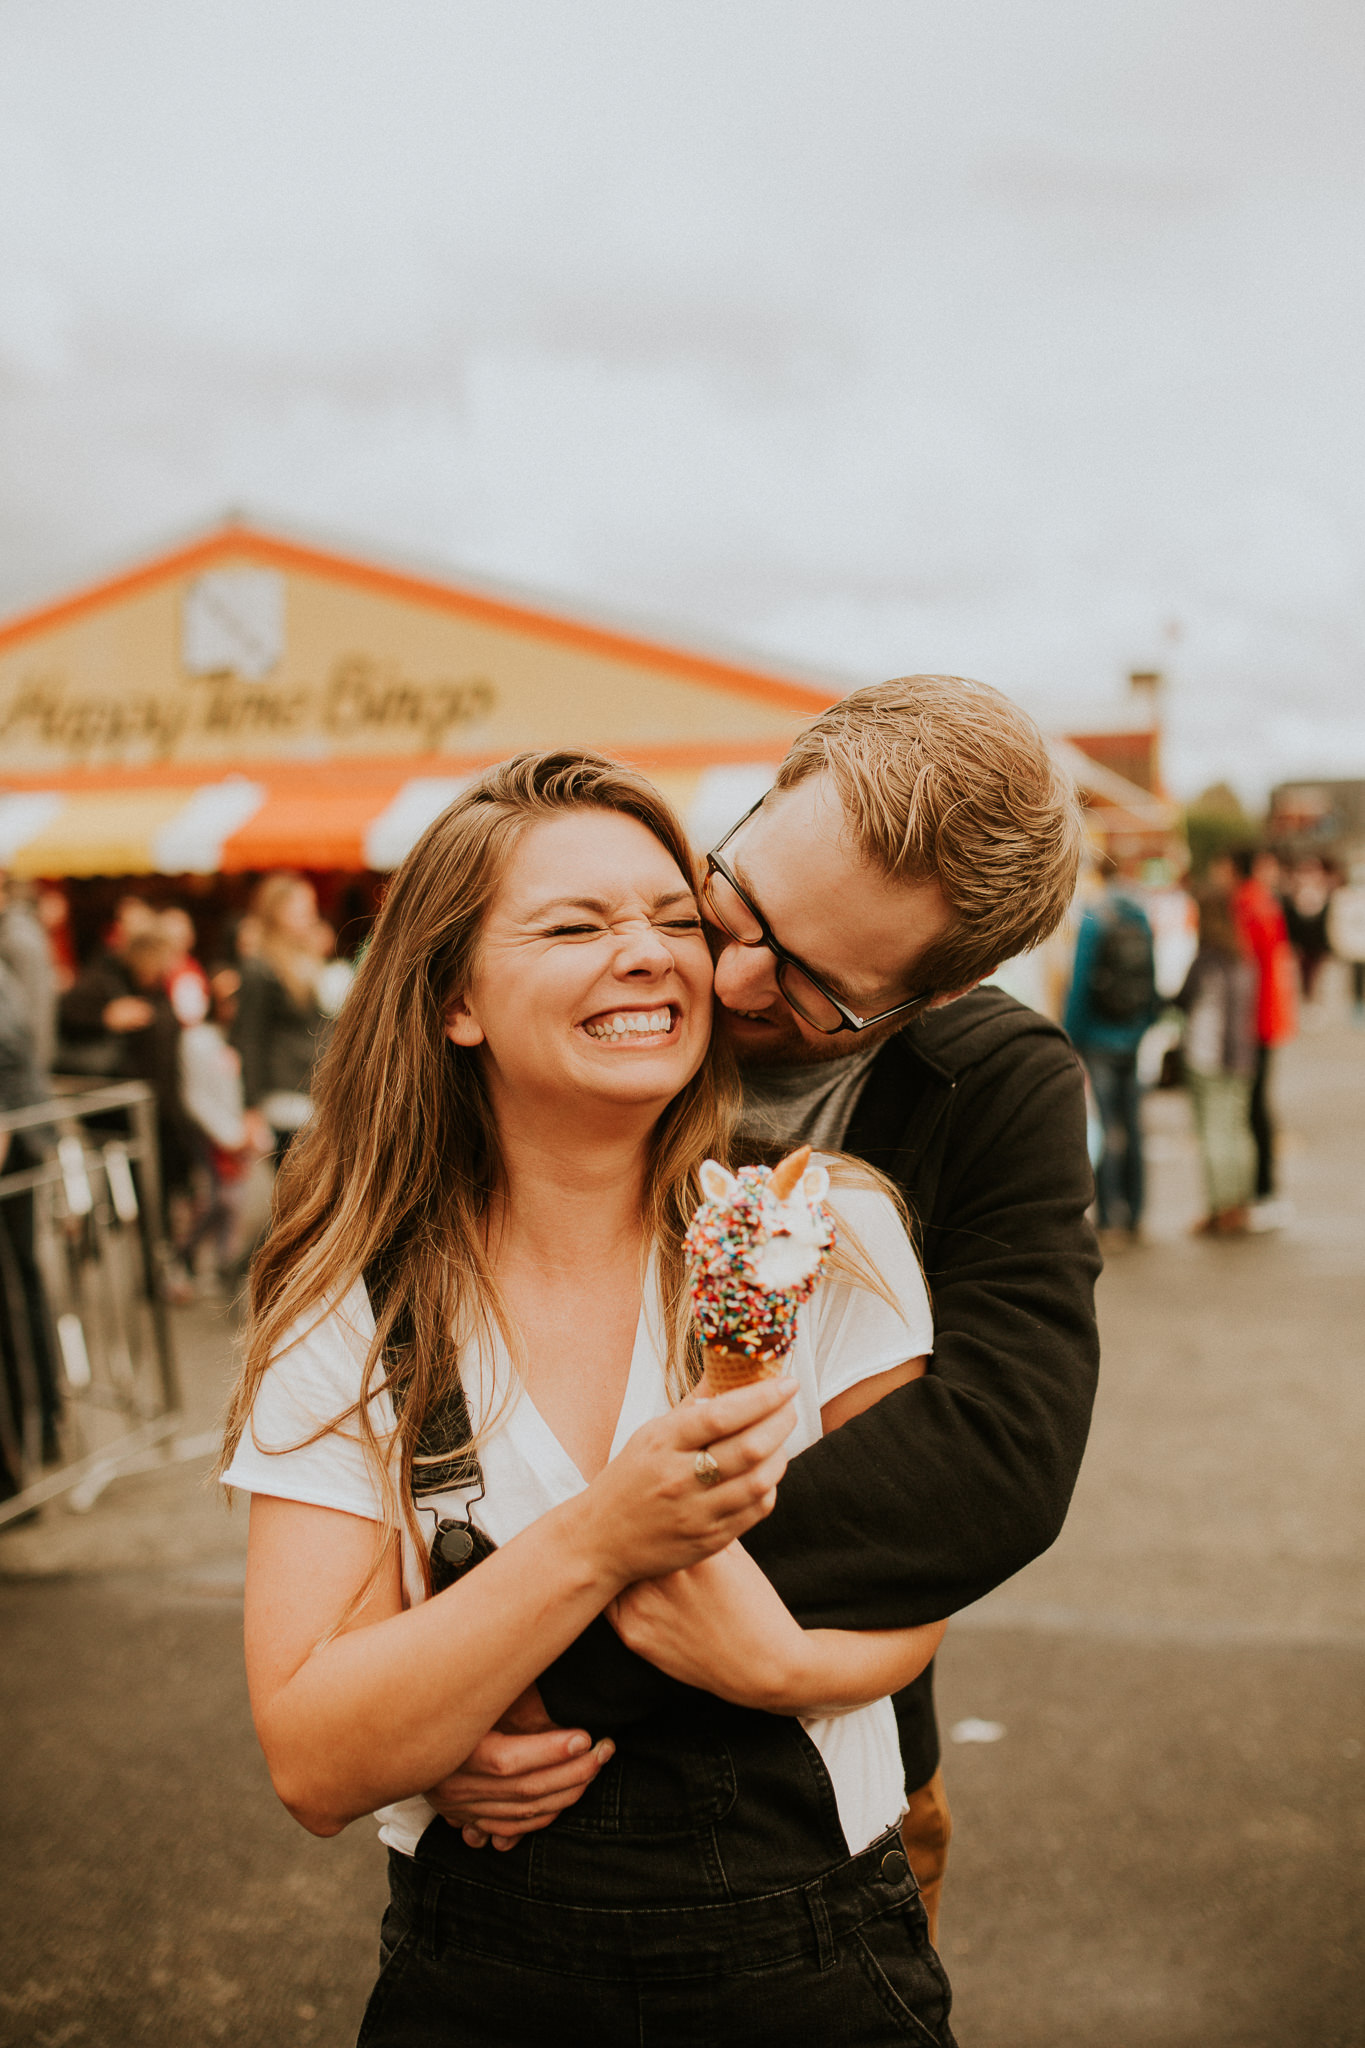 state fair engagement photos with unicorn icecream cone and its super vibey and trendy and would probably get featured on instagram.